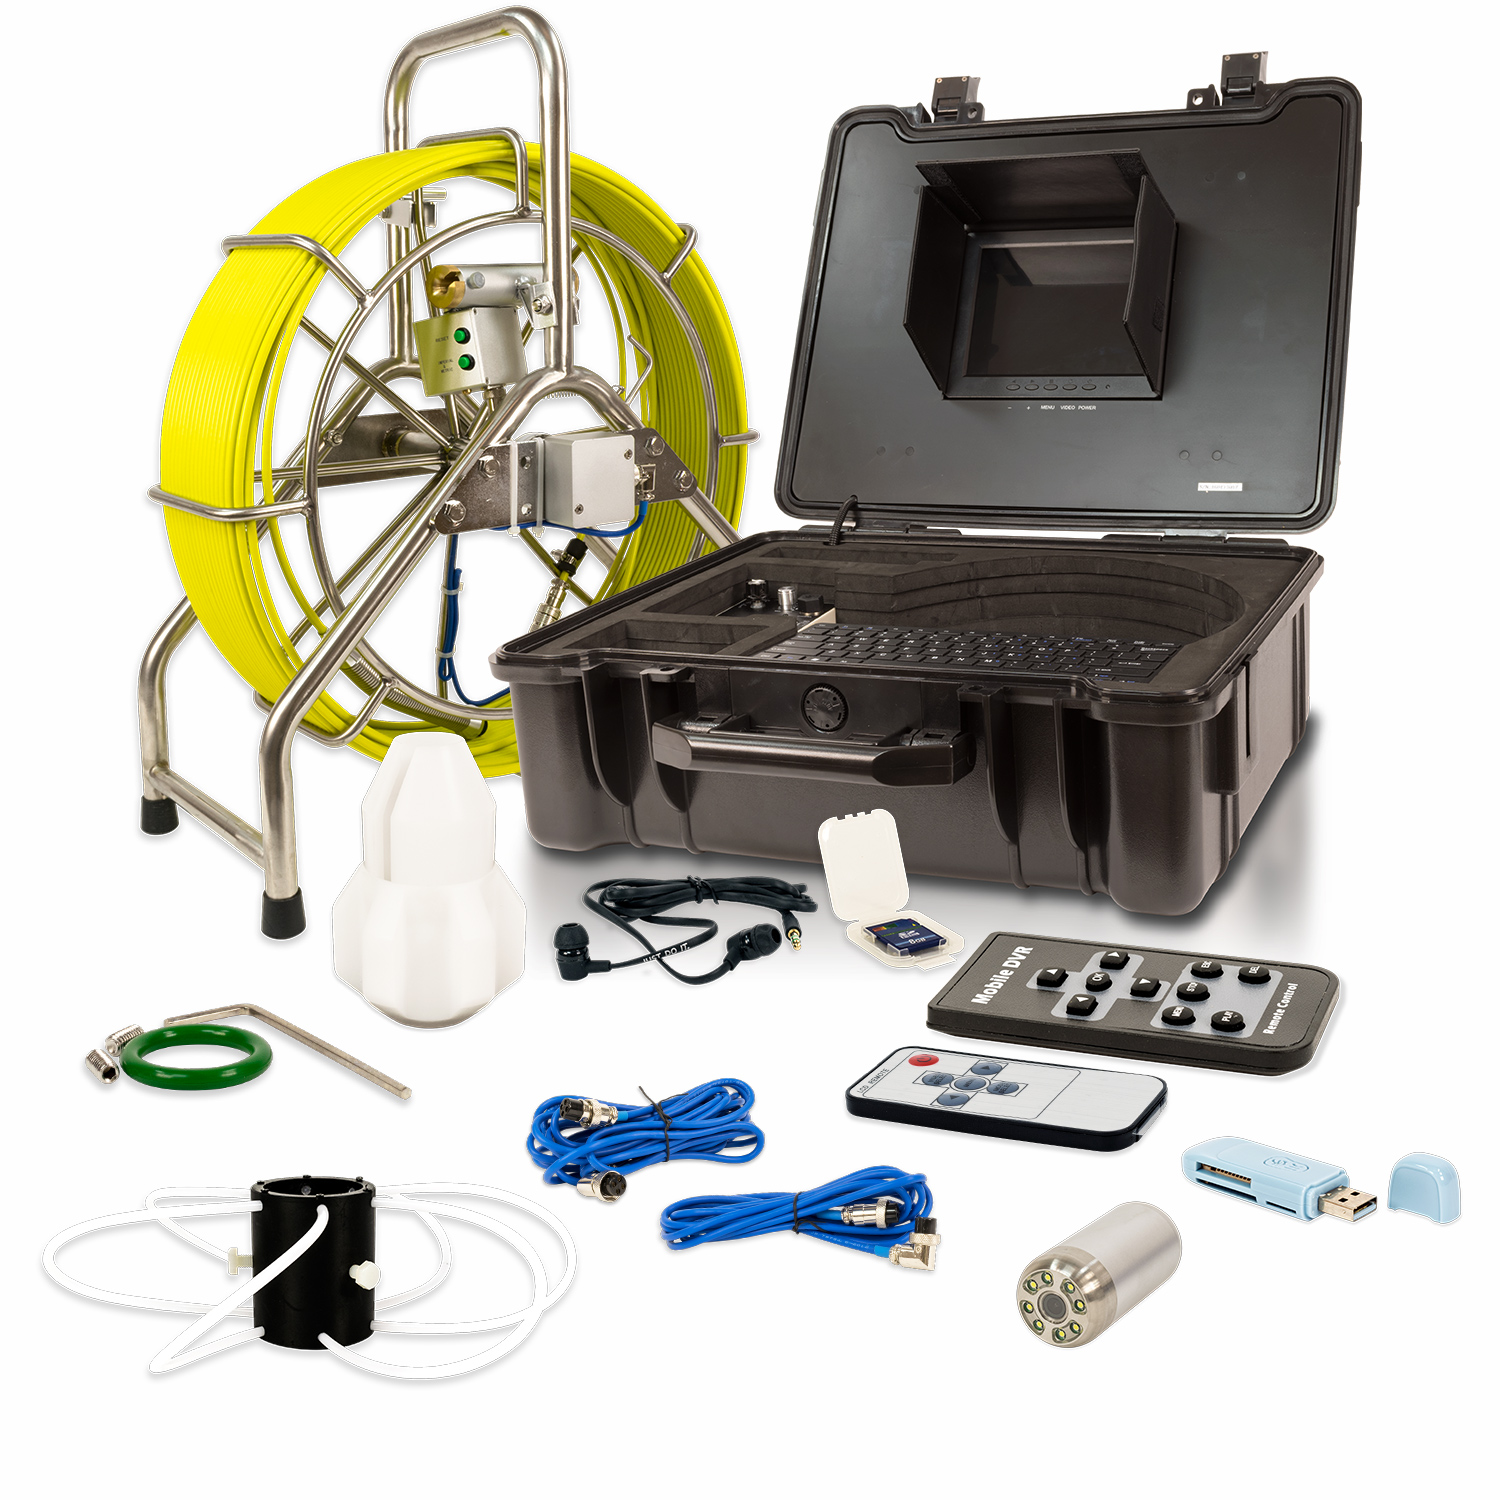 Video Snake 3388T 196' Pipe Inspection Camera w/ Transmitter